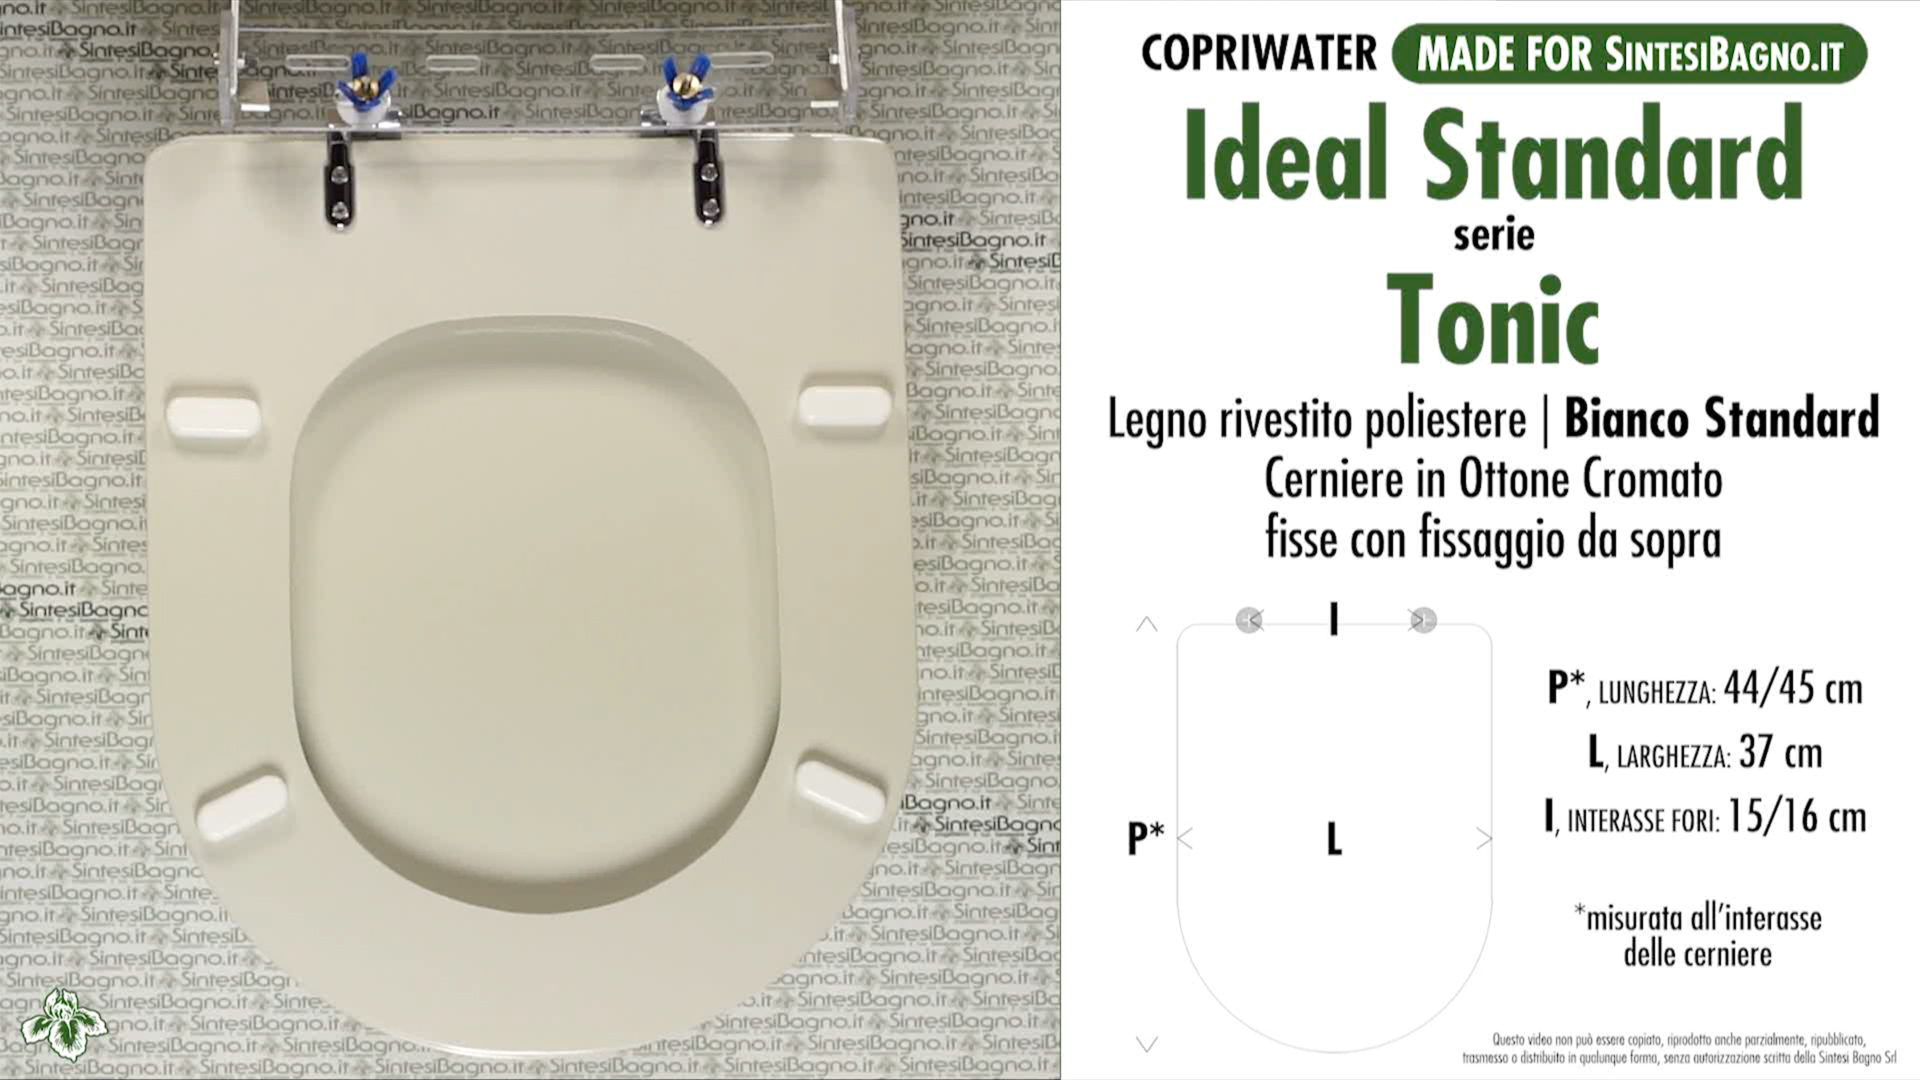 SCHEDA TECNICA MISURE copriwater IDEAL STANDARD TONIC